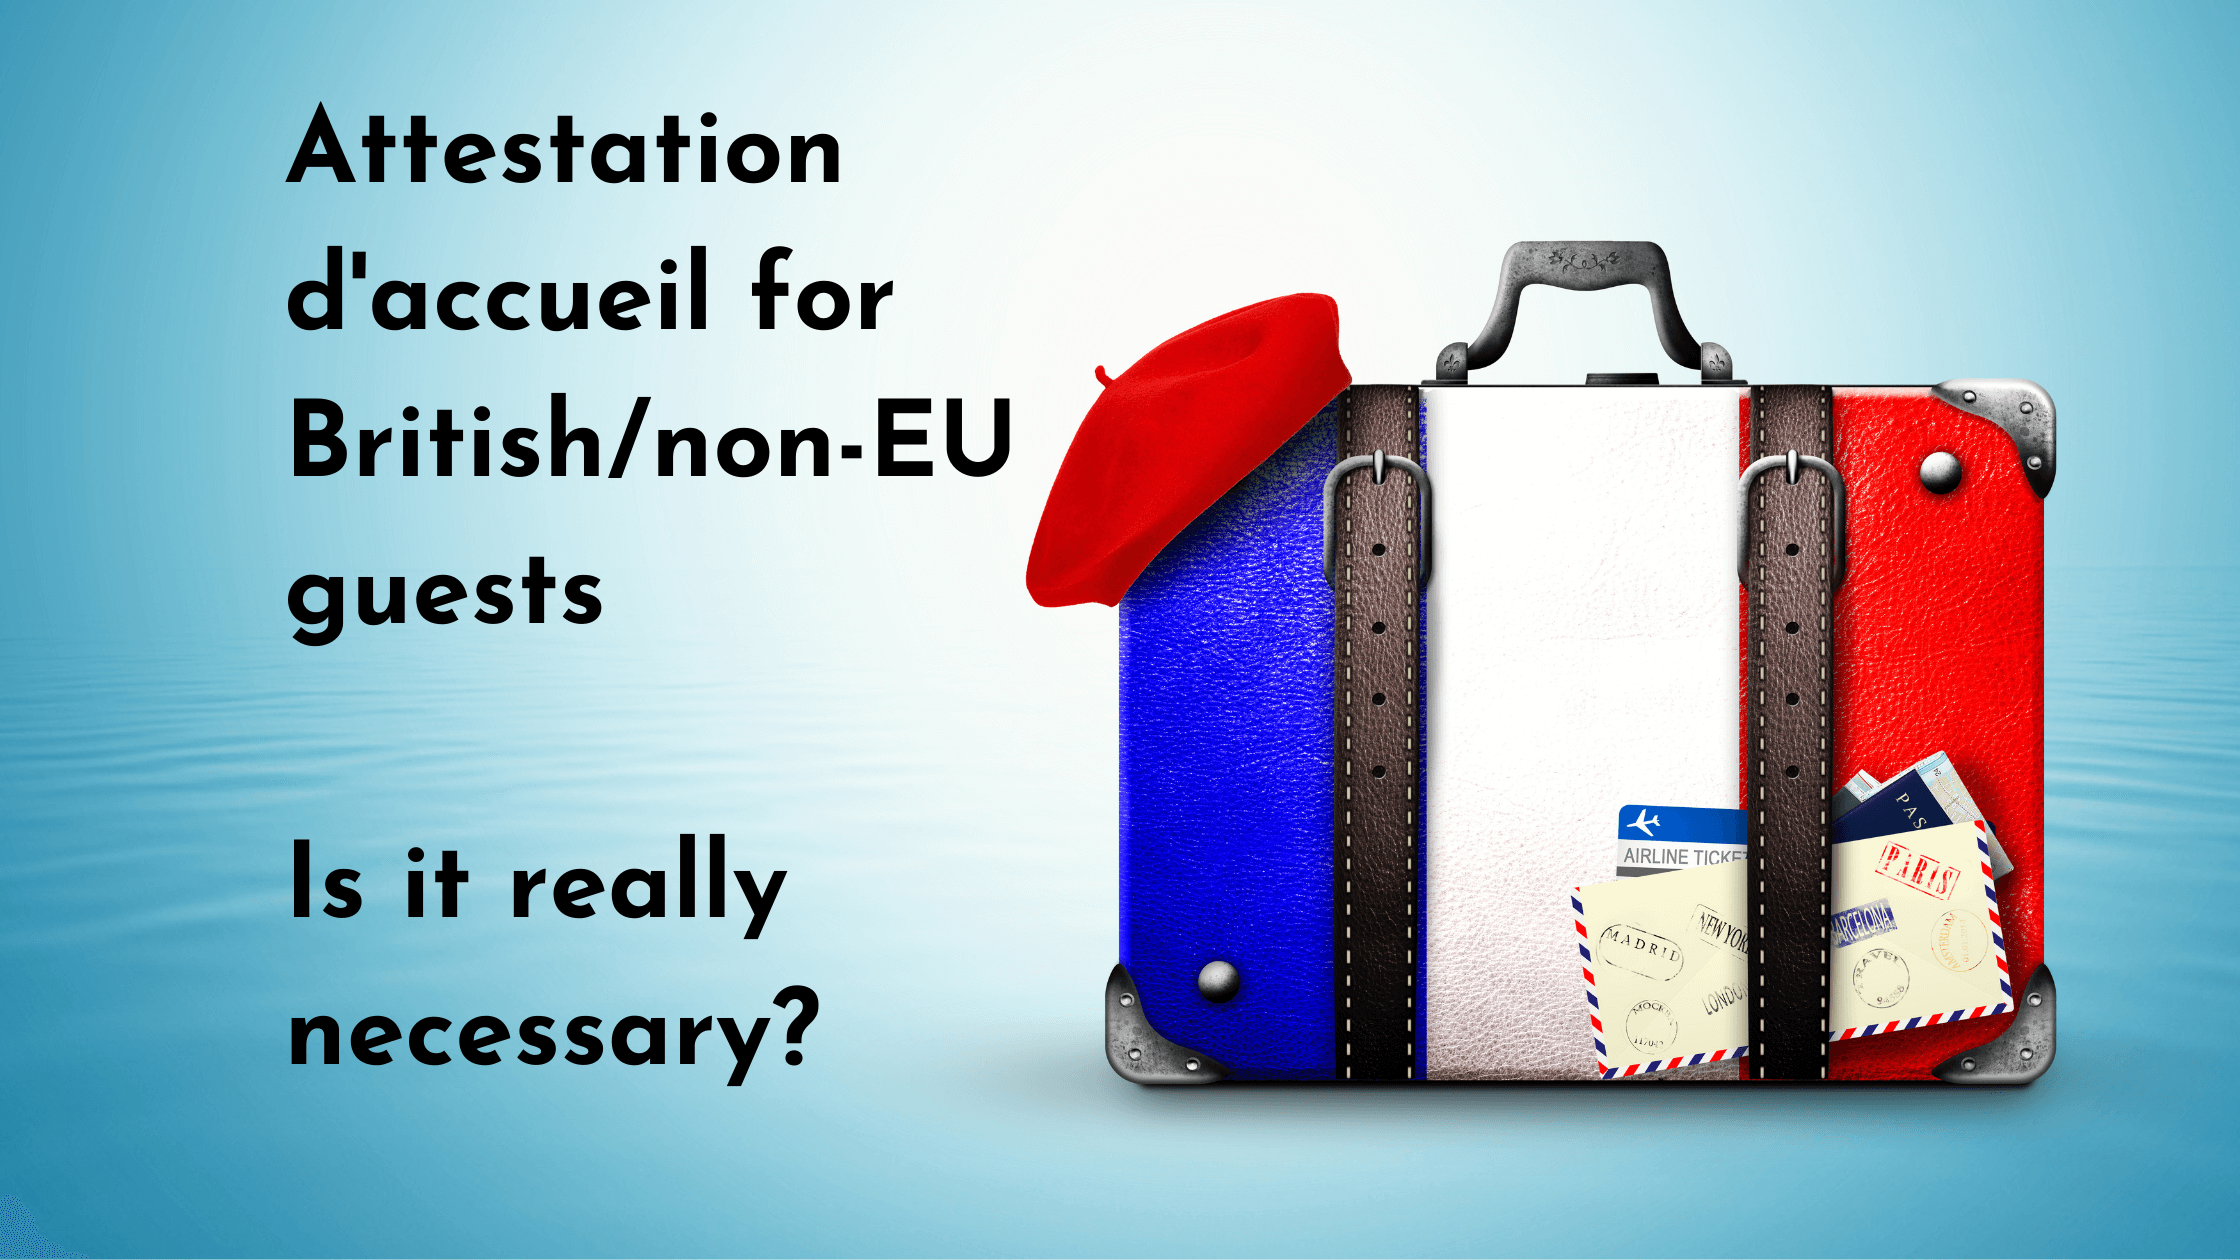 Attestation d'accueil for British / non-EU guests - is it really necessary?